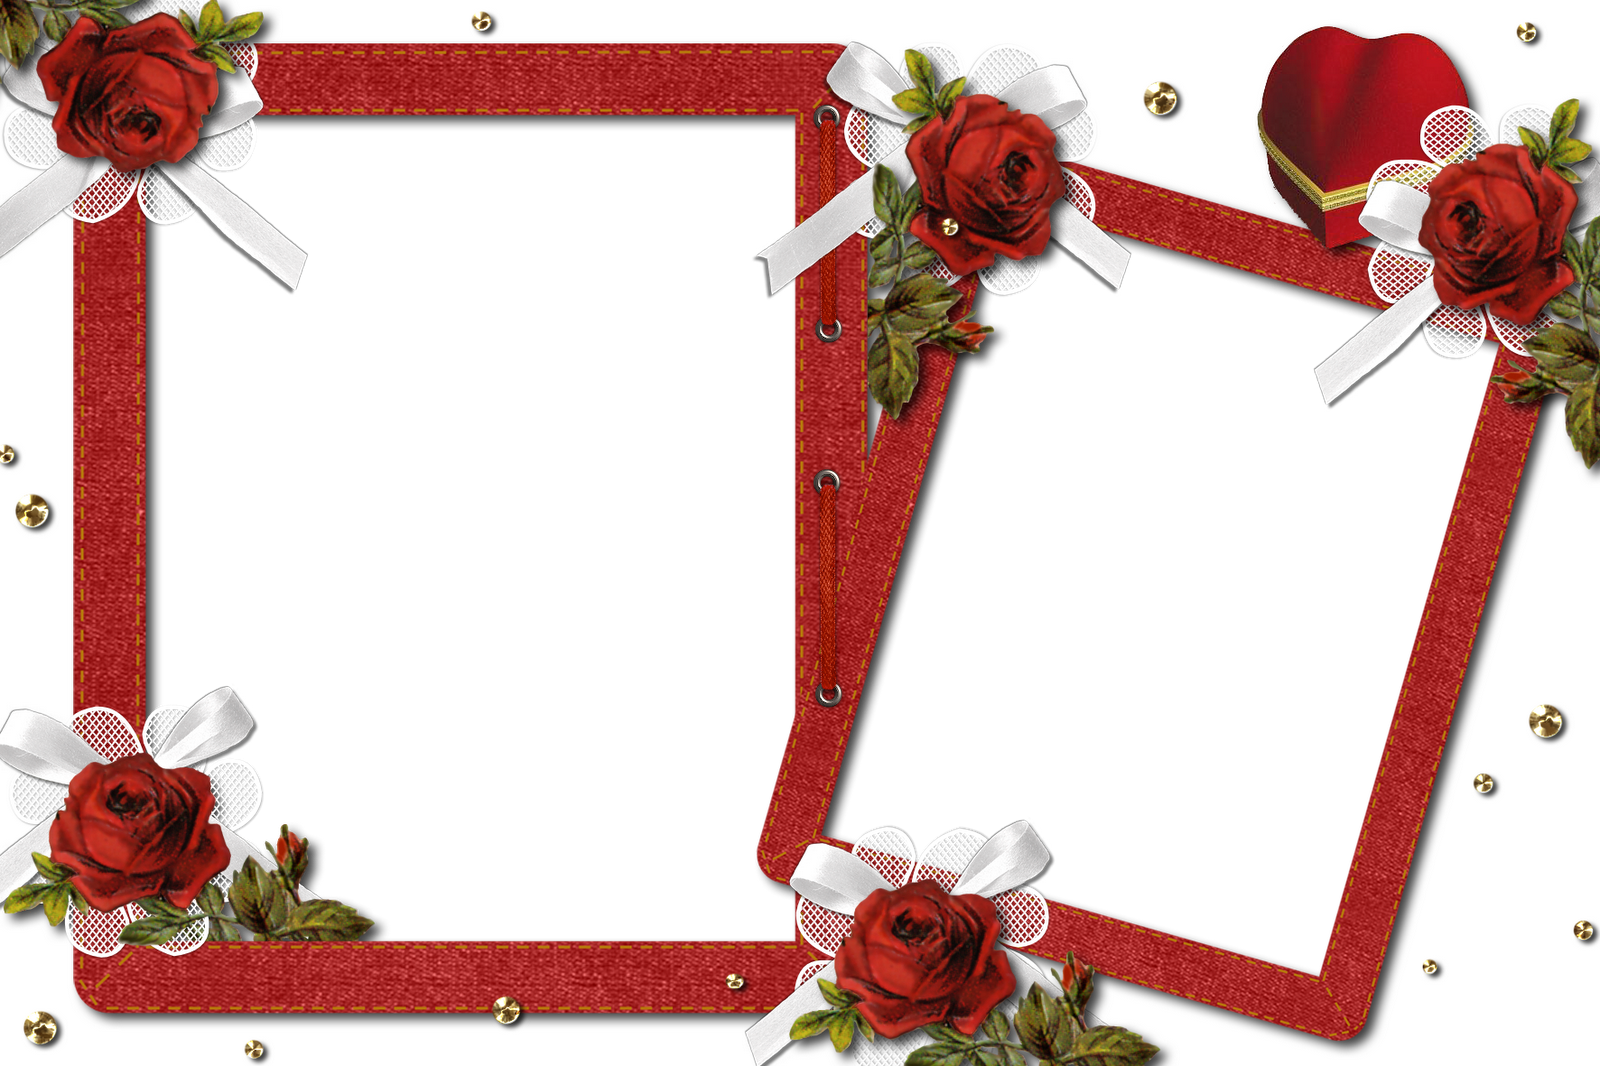 Double Romantic Transparent Photo Frame With Roses Free Photo Frames Christmas Frames Photo Frame